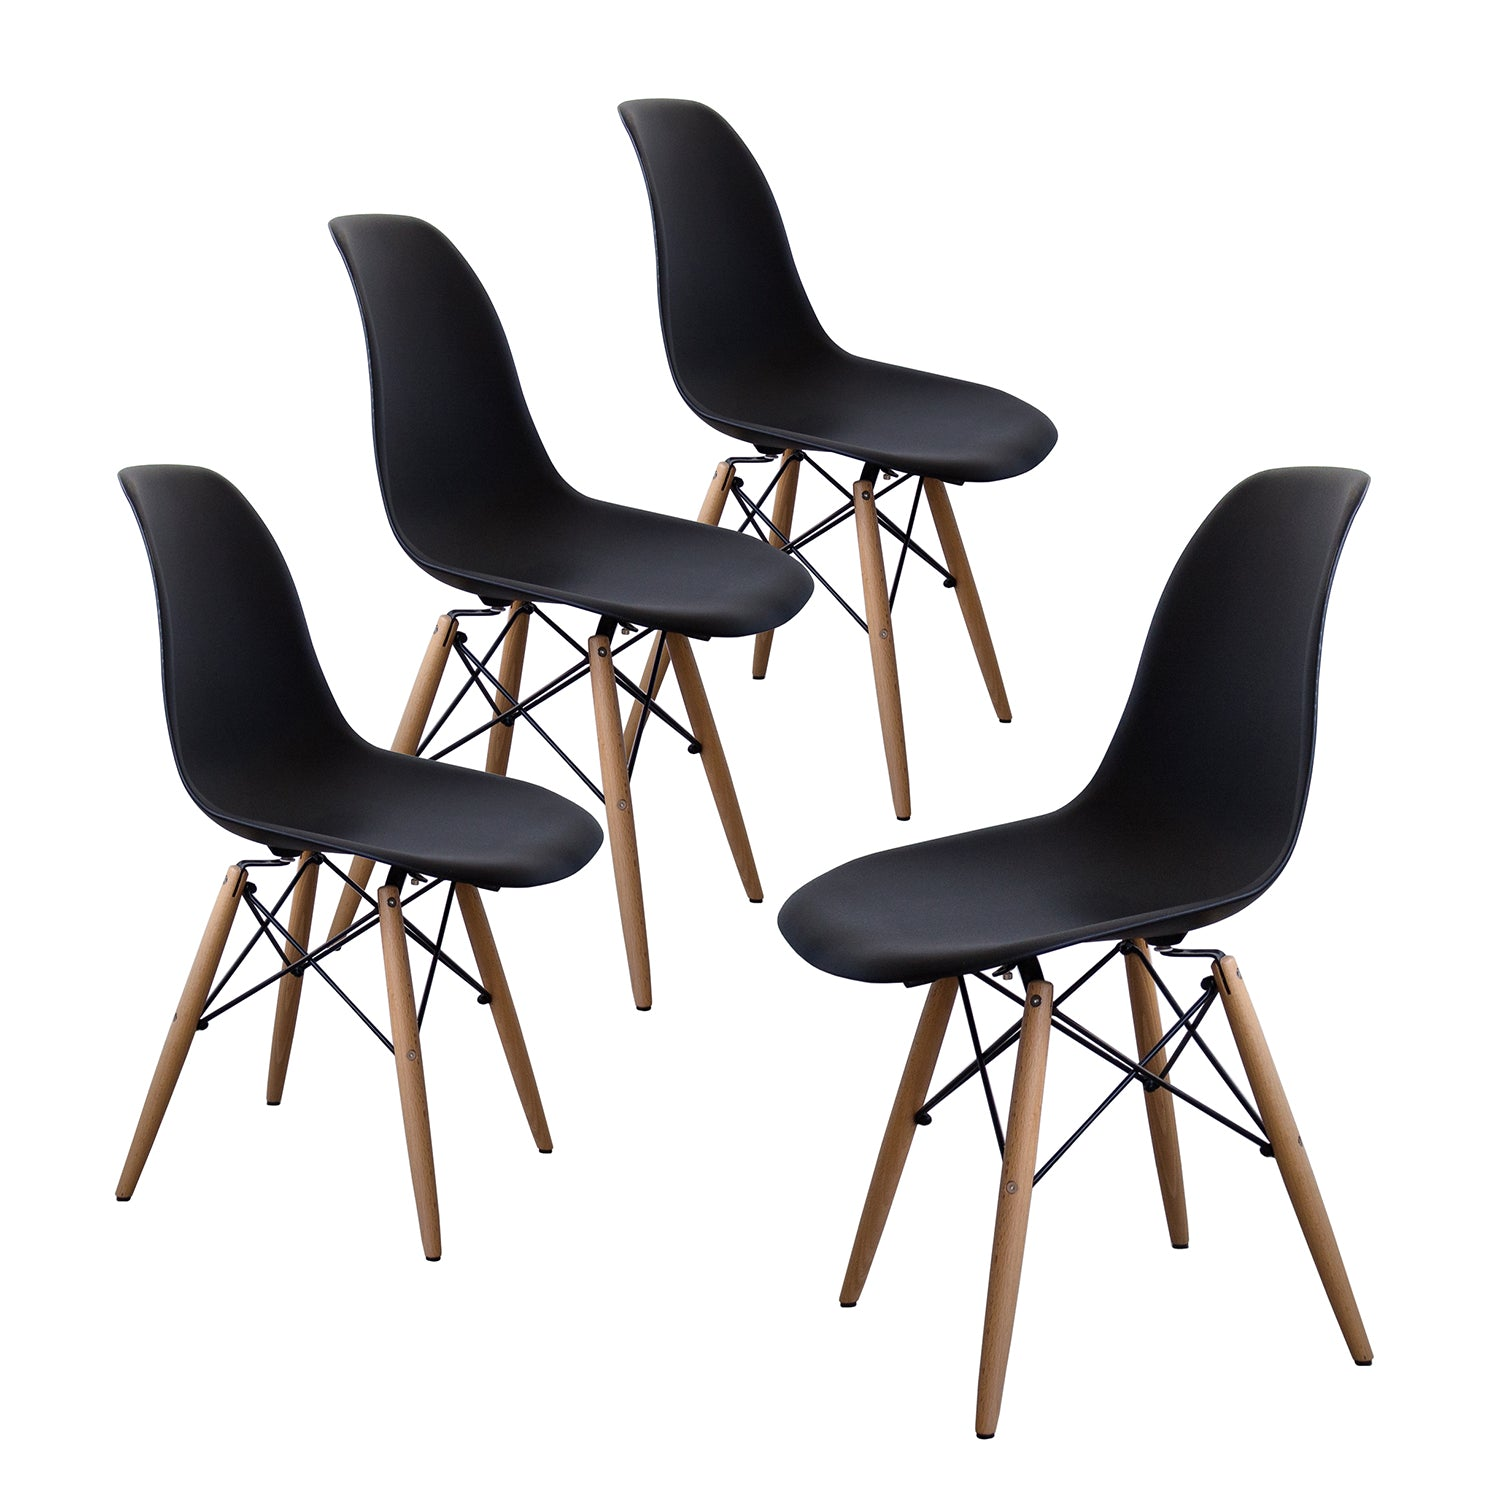 Buschman Set of 4 Black Chairs, Mid Century Modern Dining Chairs